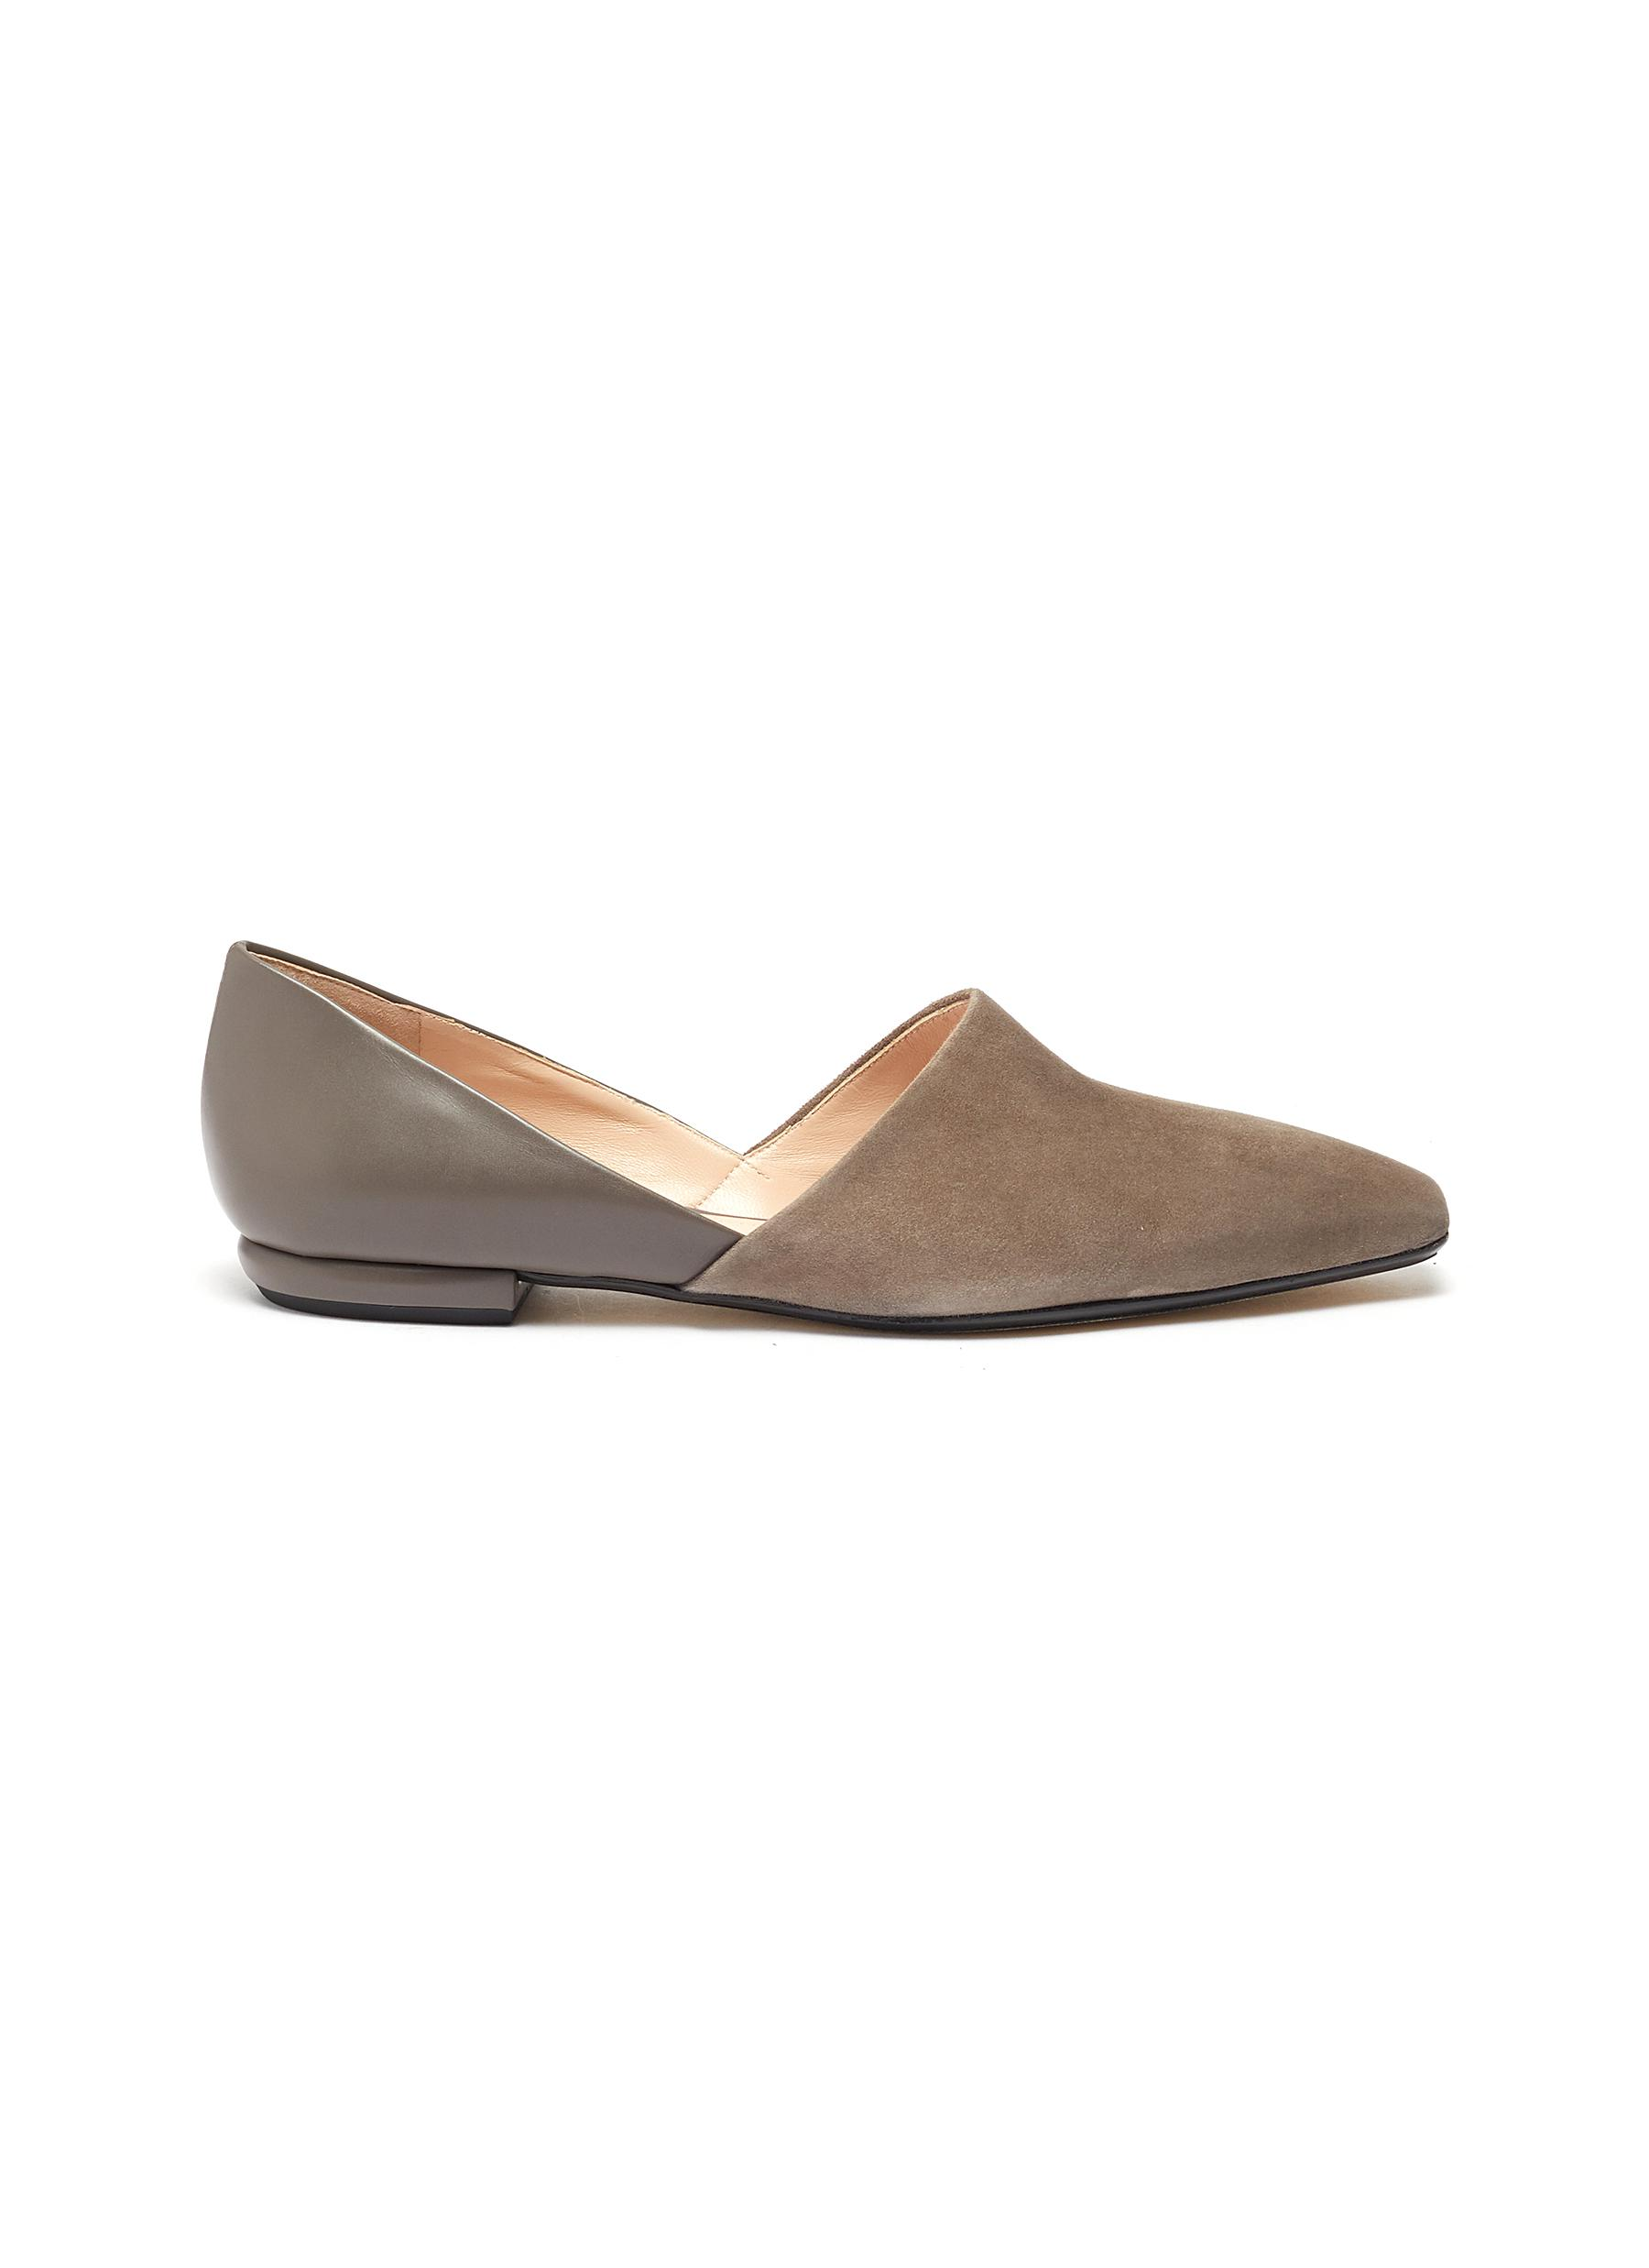 Cutout suede panel leather loafers by Rodo